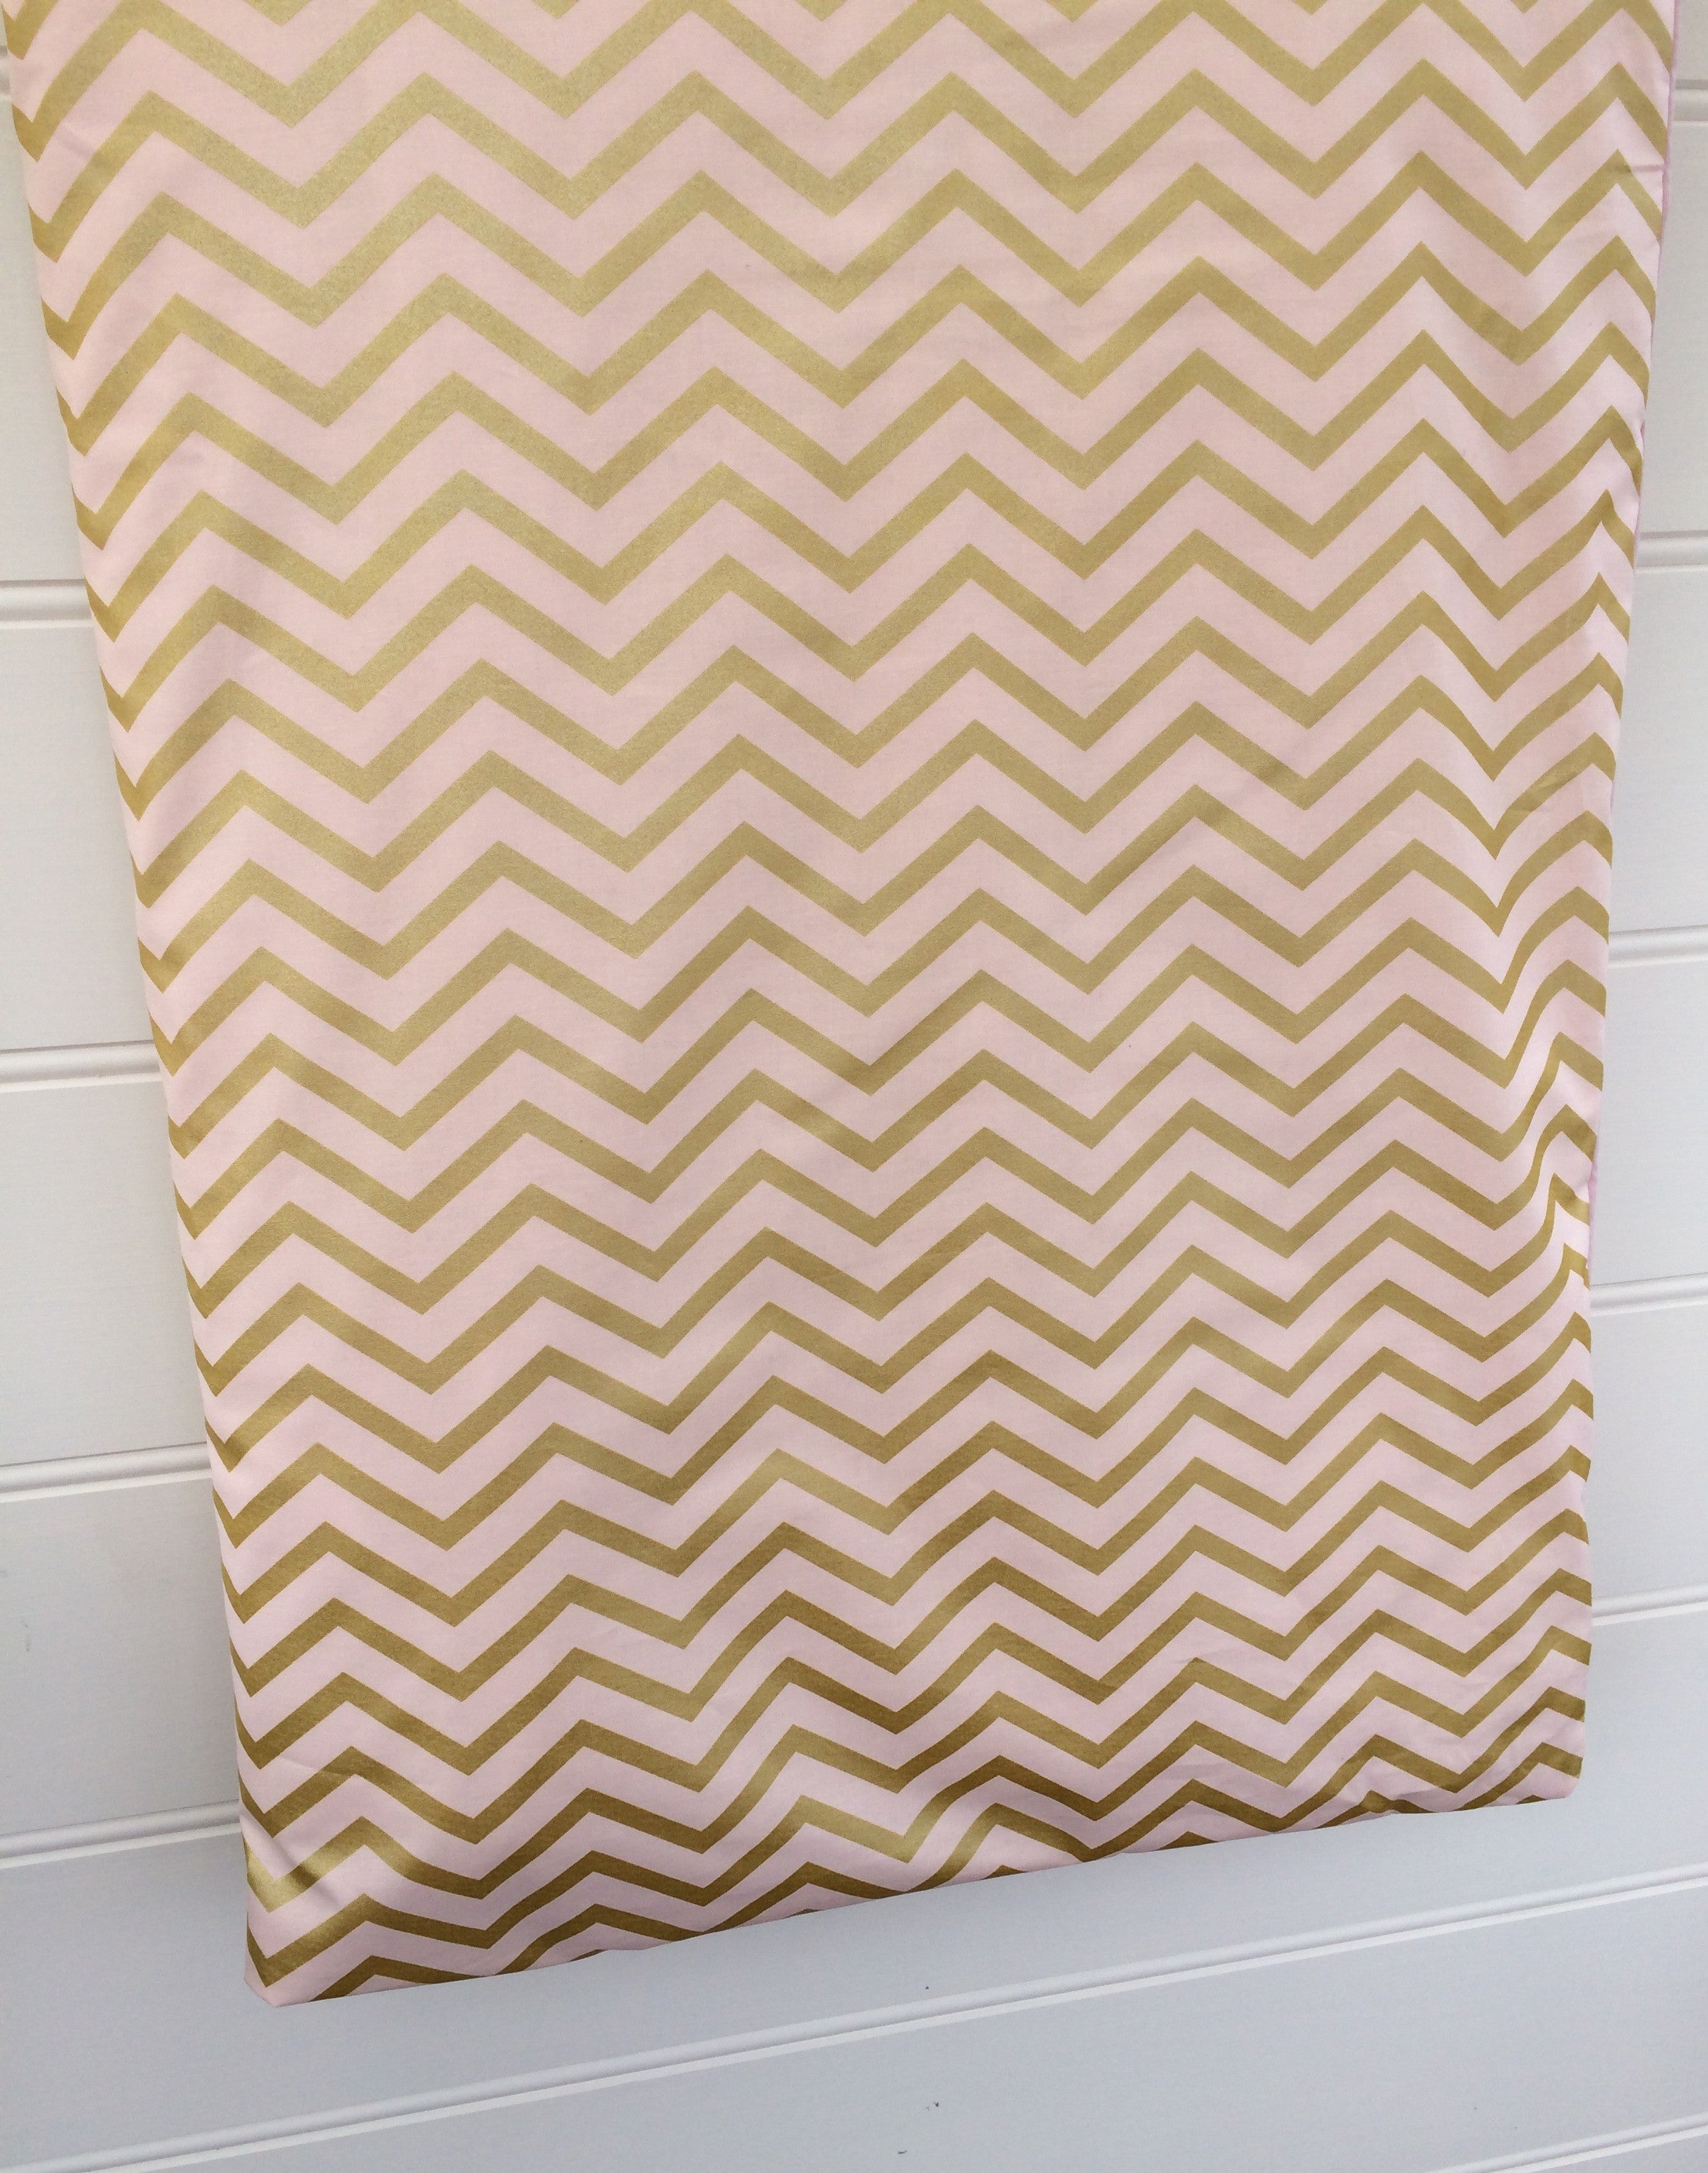 Cot Quilt / Doona Cover in Blush Pink & Gold Chevron